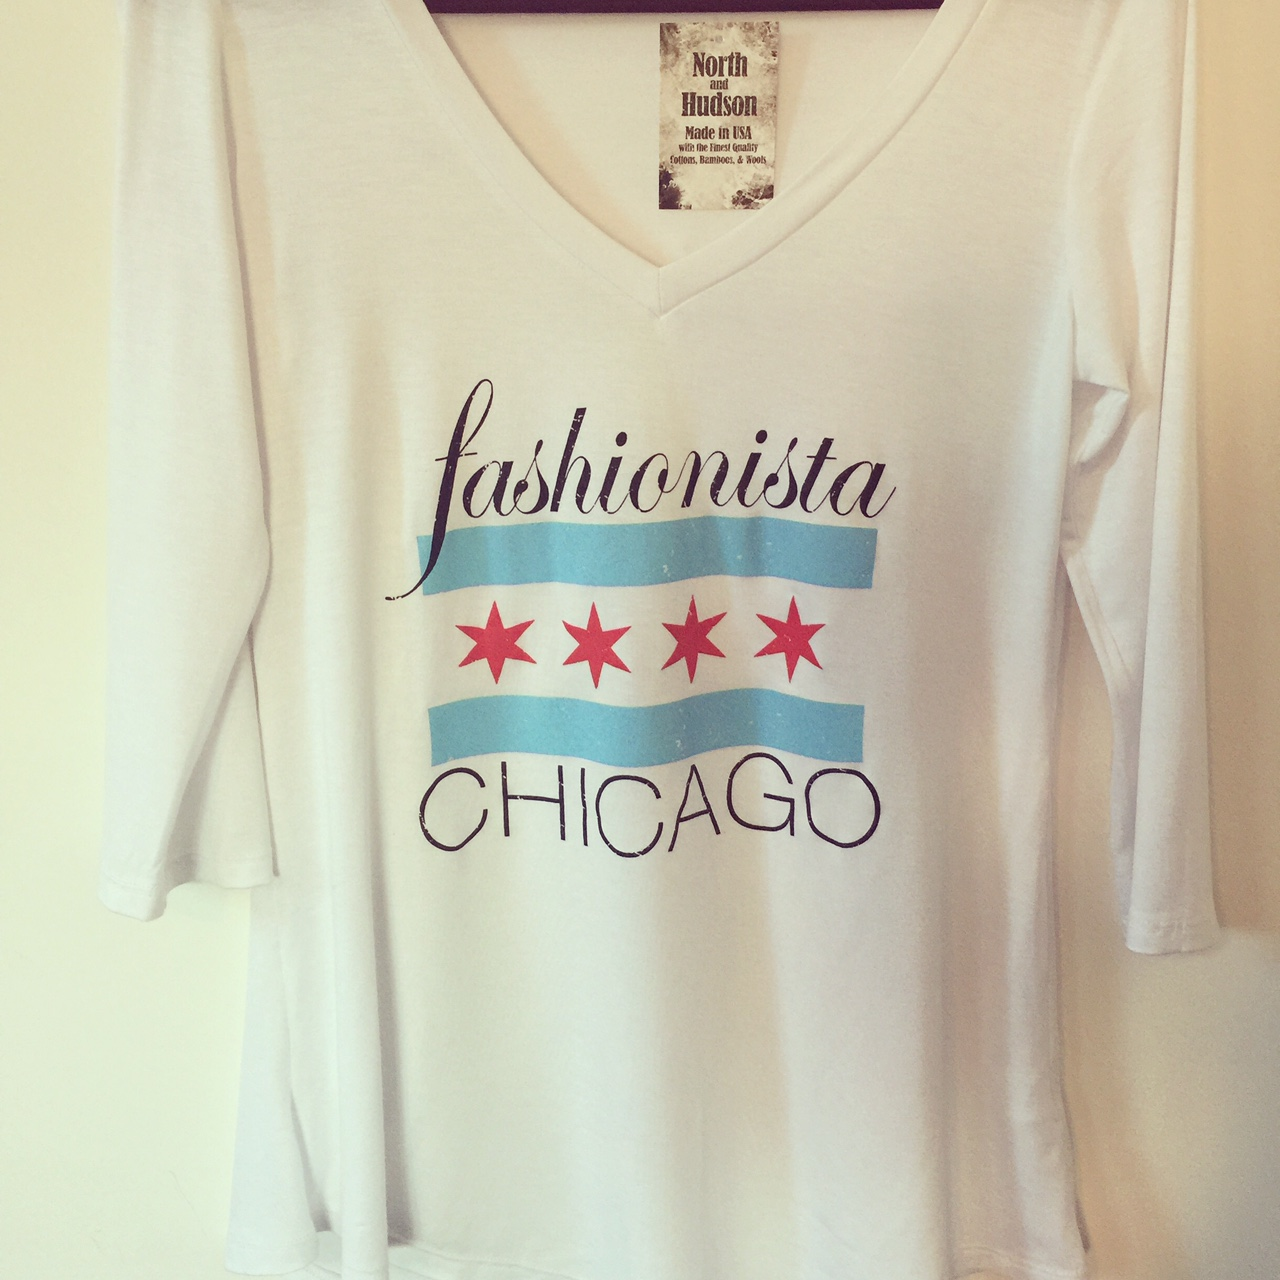 How cool is this   Fashionista Chicago   and   North and Hudson   T-shirt collaboration!  Get it here:  https://www.etsy.com/listing/225202683/chicago-flag-t-shirt-made-of-soft